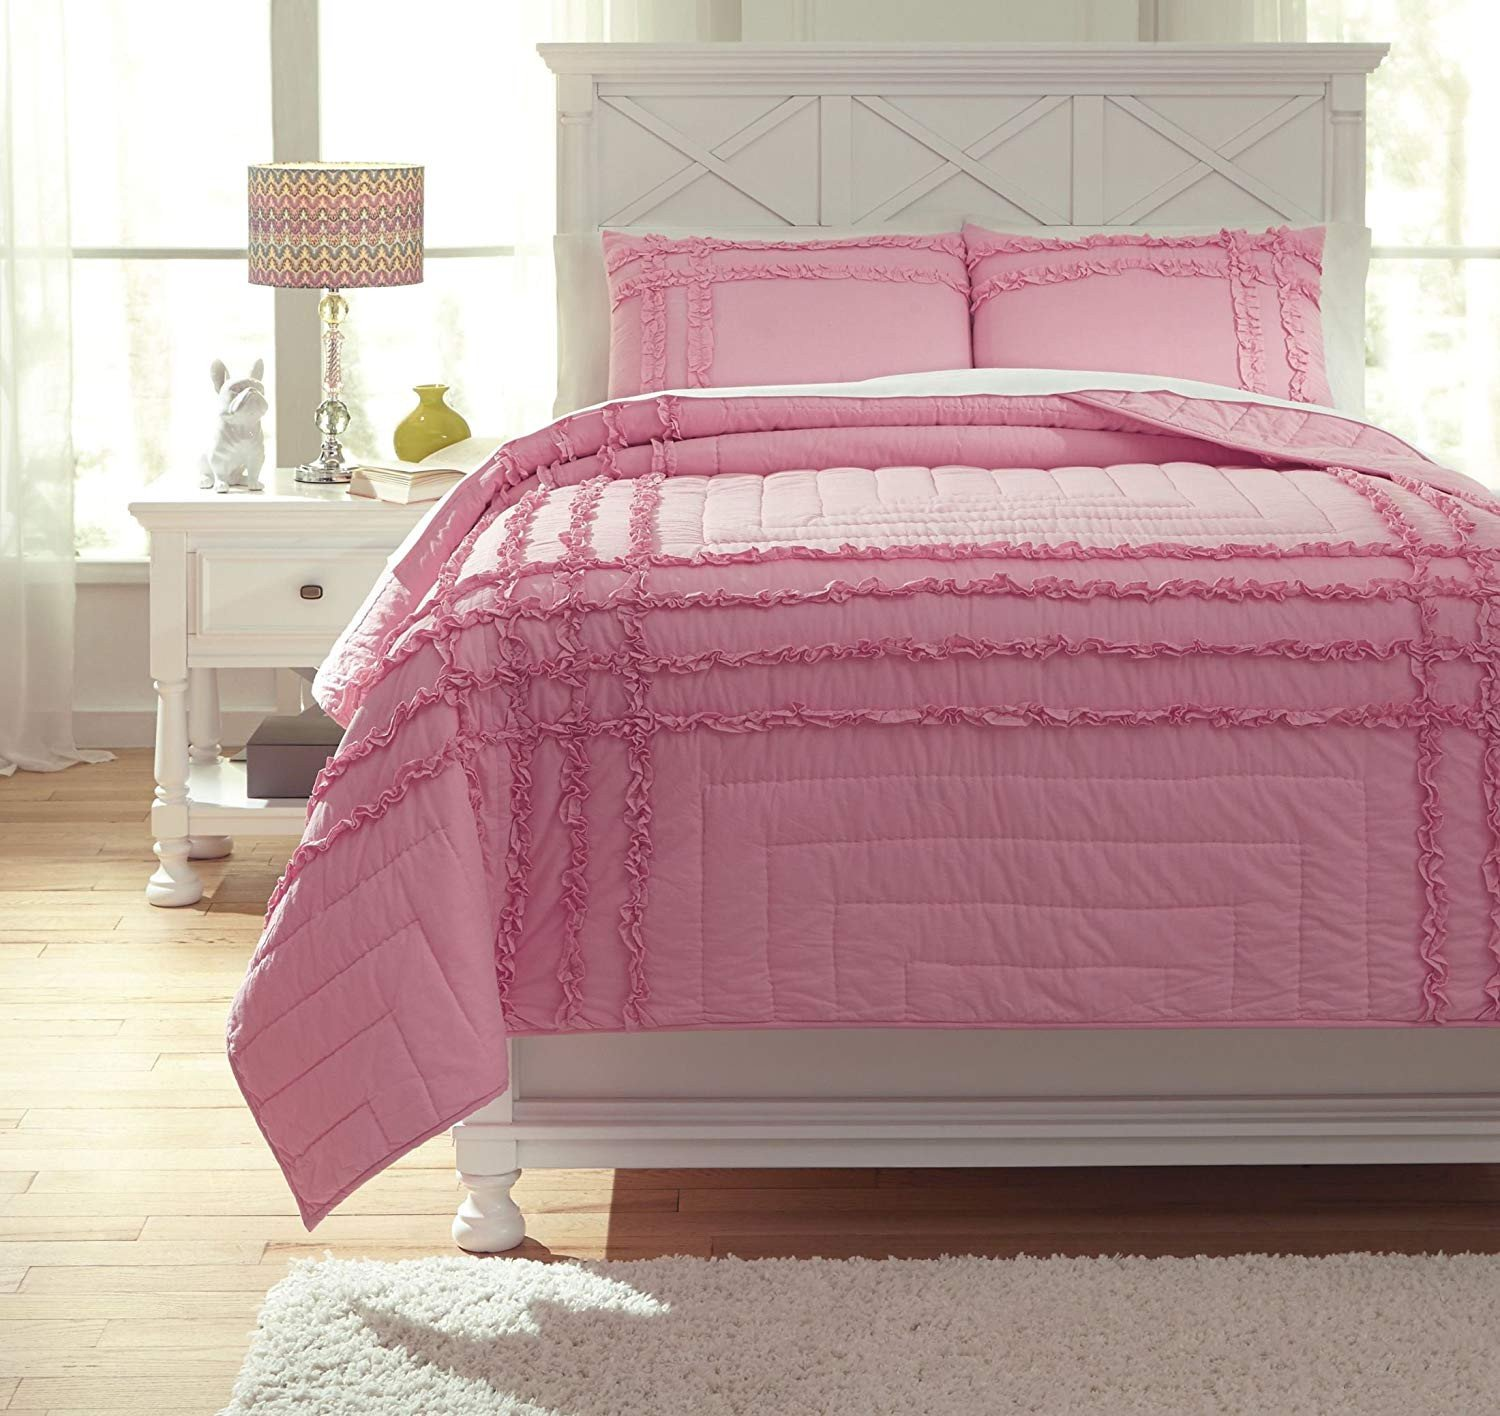 Ashley Black Bedroom Set Beautiful Amazon ashley Megara Full Quilt Set In Pink Home & Kitchen